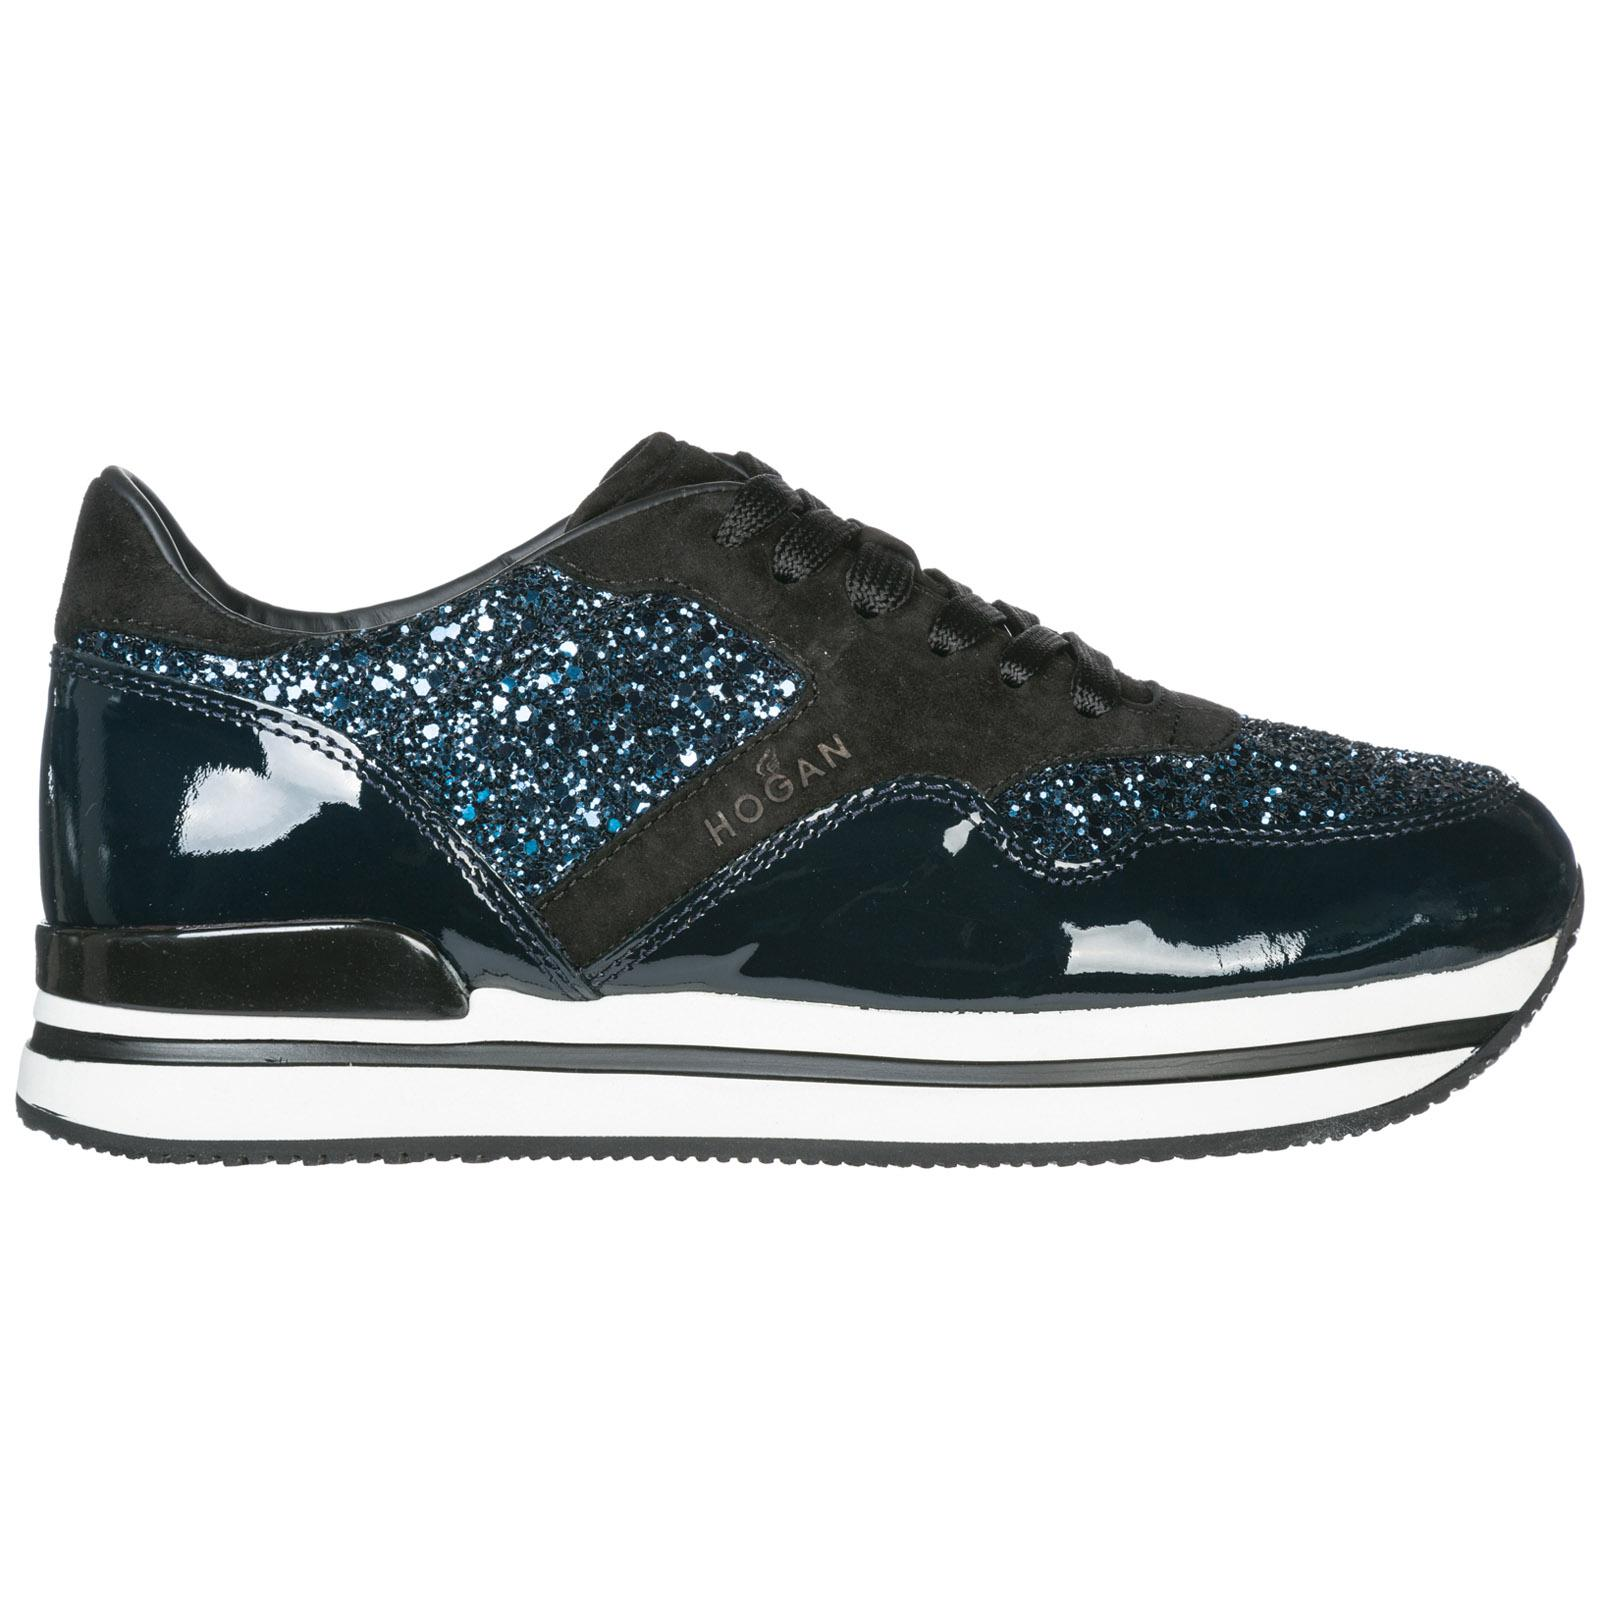 Hogan Women's Shoes Leather Trainers Sneakers H222 in Blue - Lyst